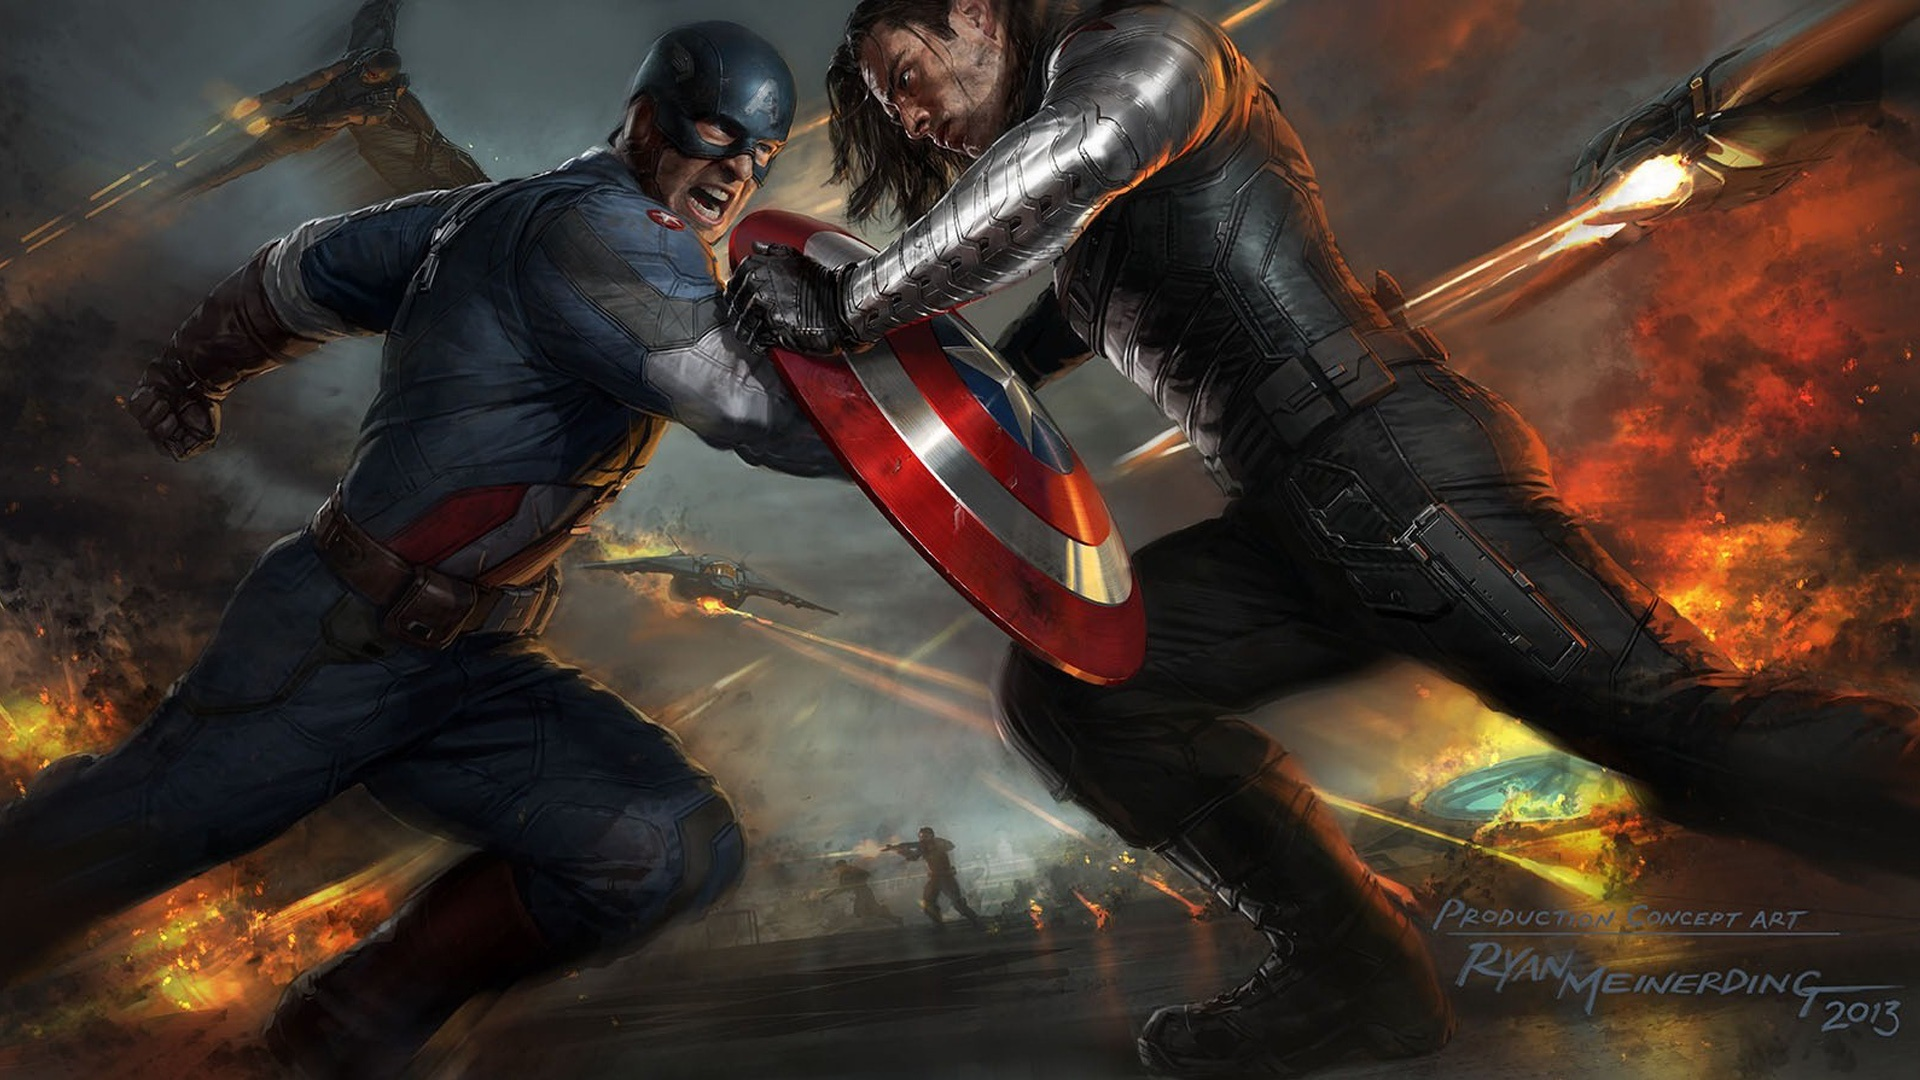 marvel live-action movies images captain america winter soldier hd